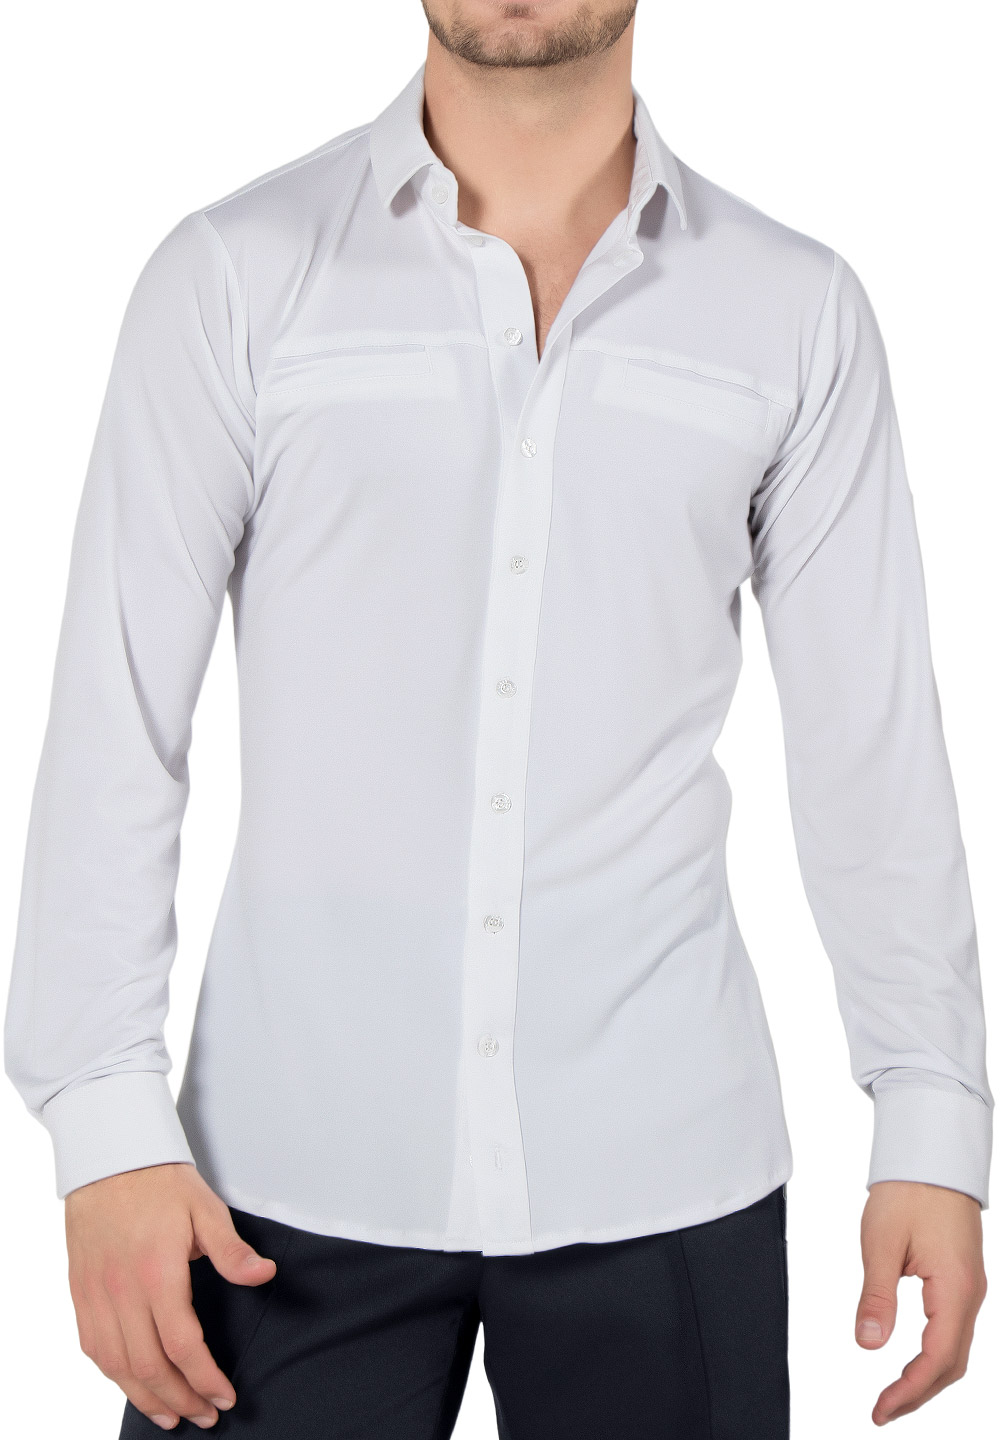 Maly Mens Shirt With Piping Trim MF182203